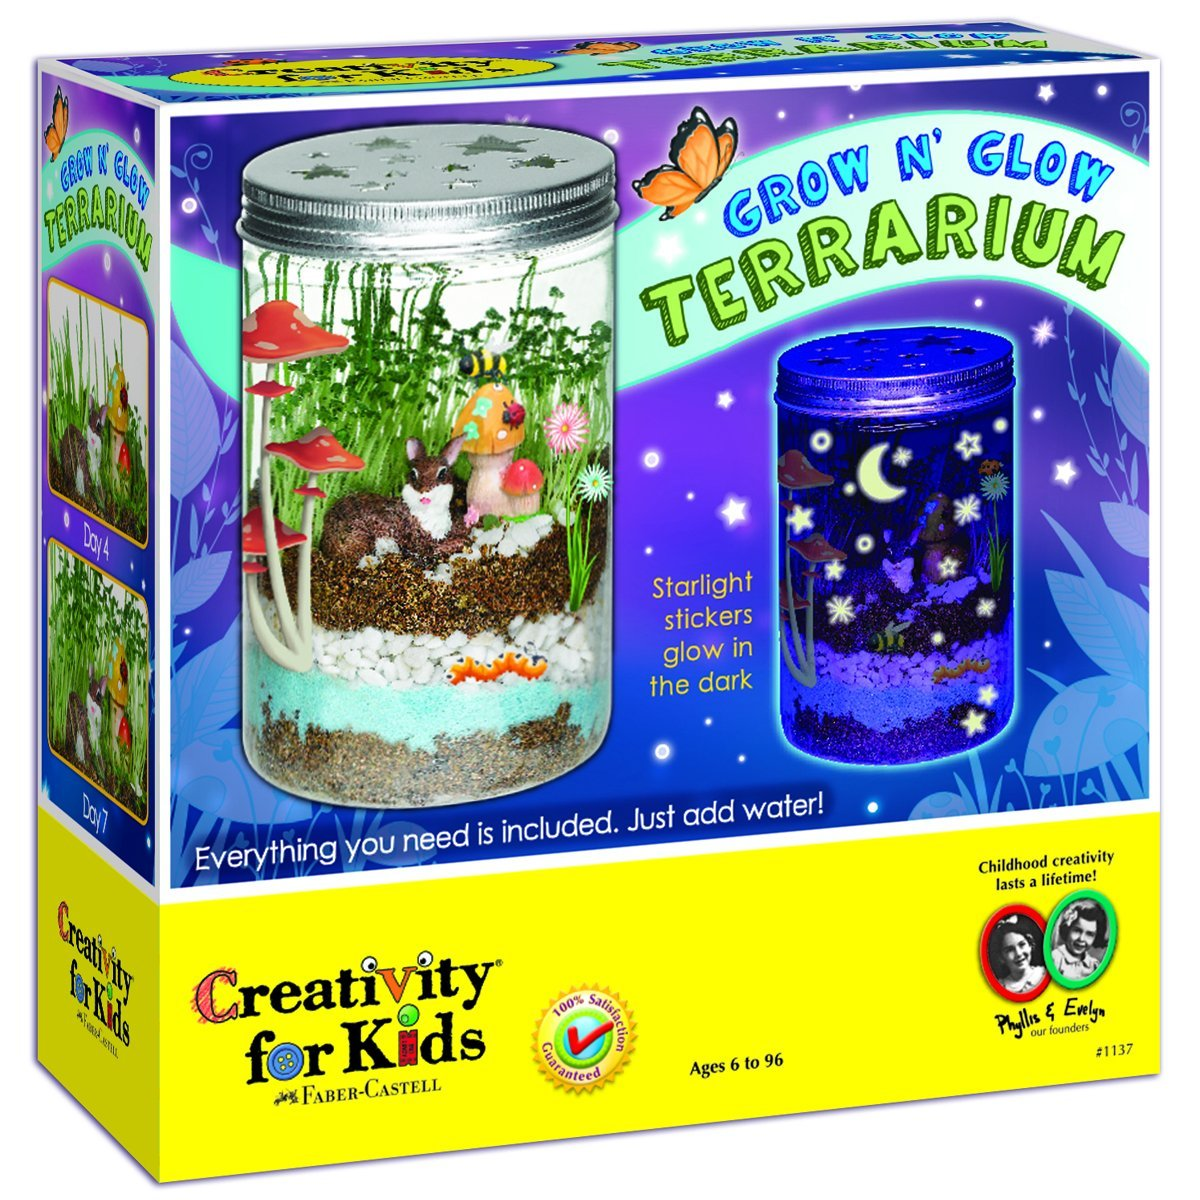 SUPER COOL Creativity for Kids Grow 'n Glow Terrarium Only $12.99!